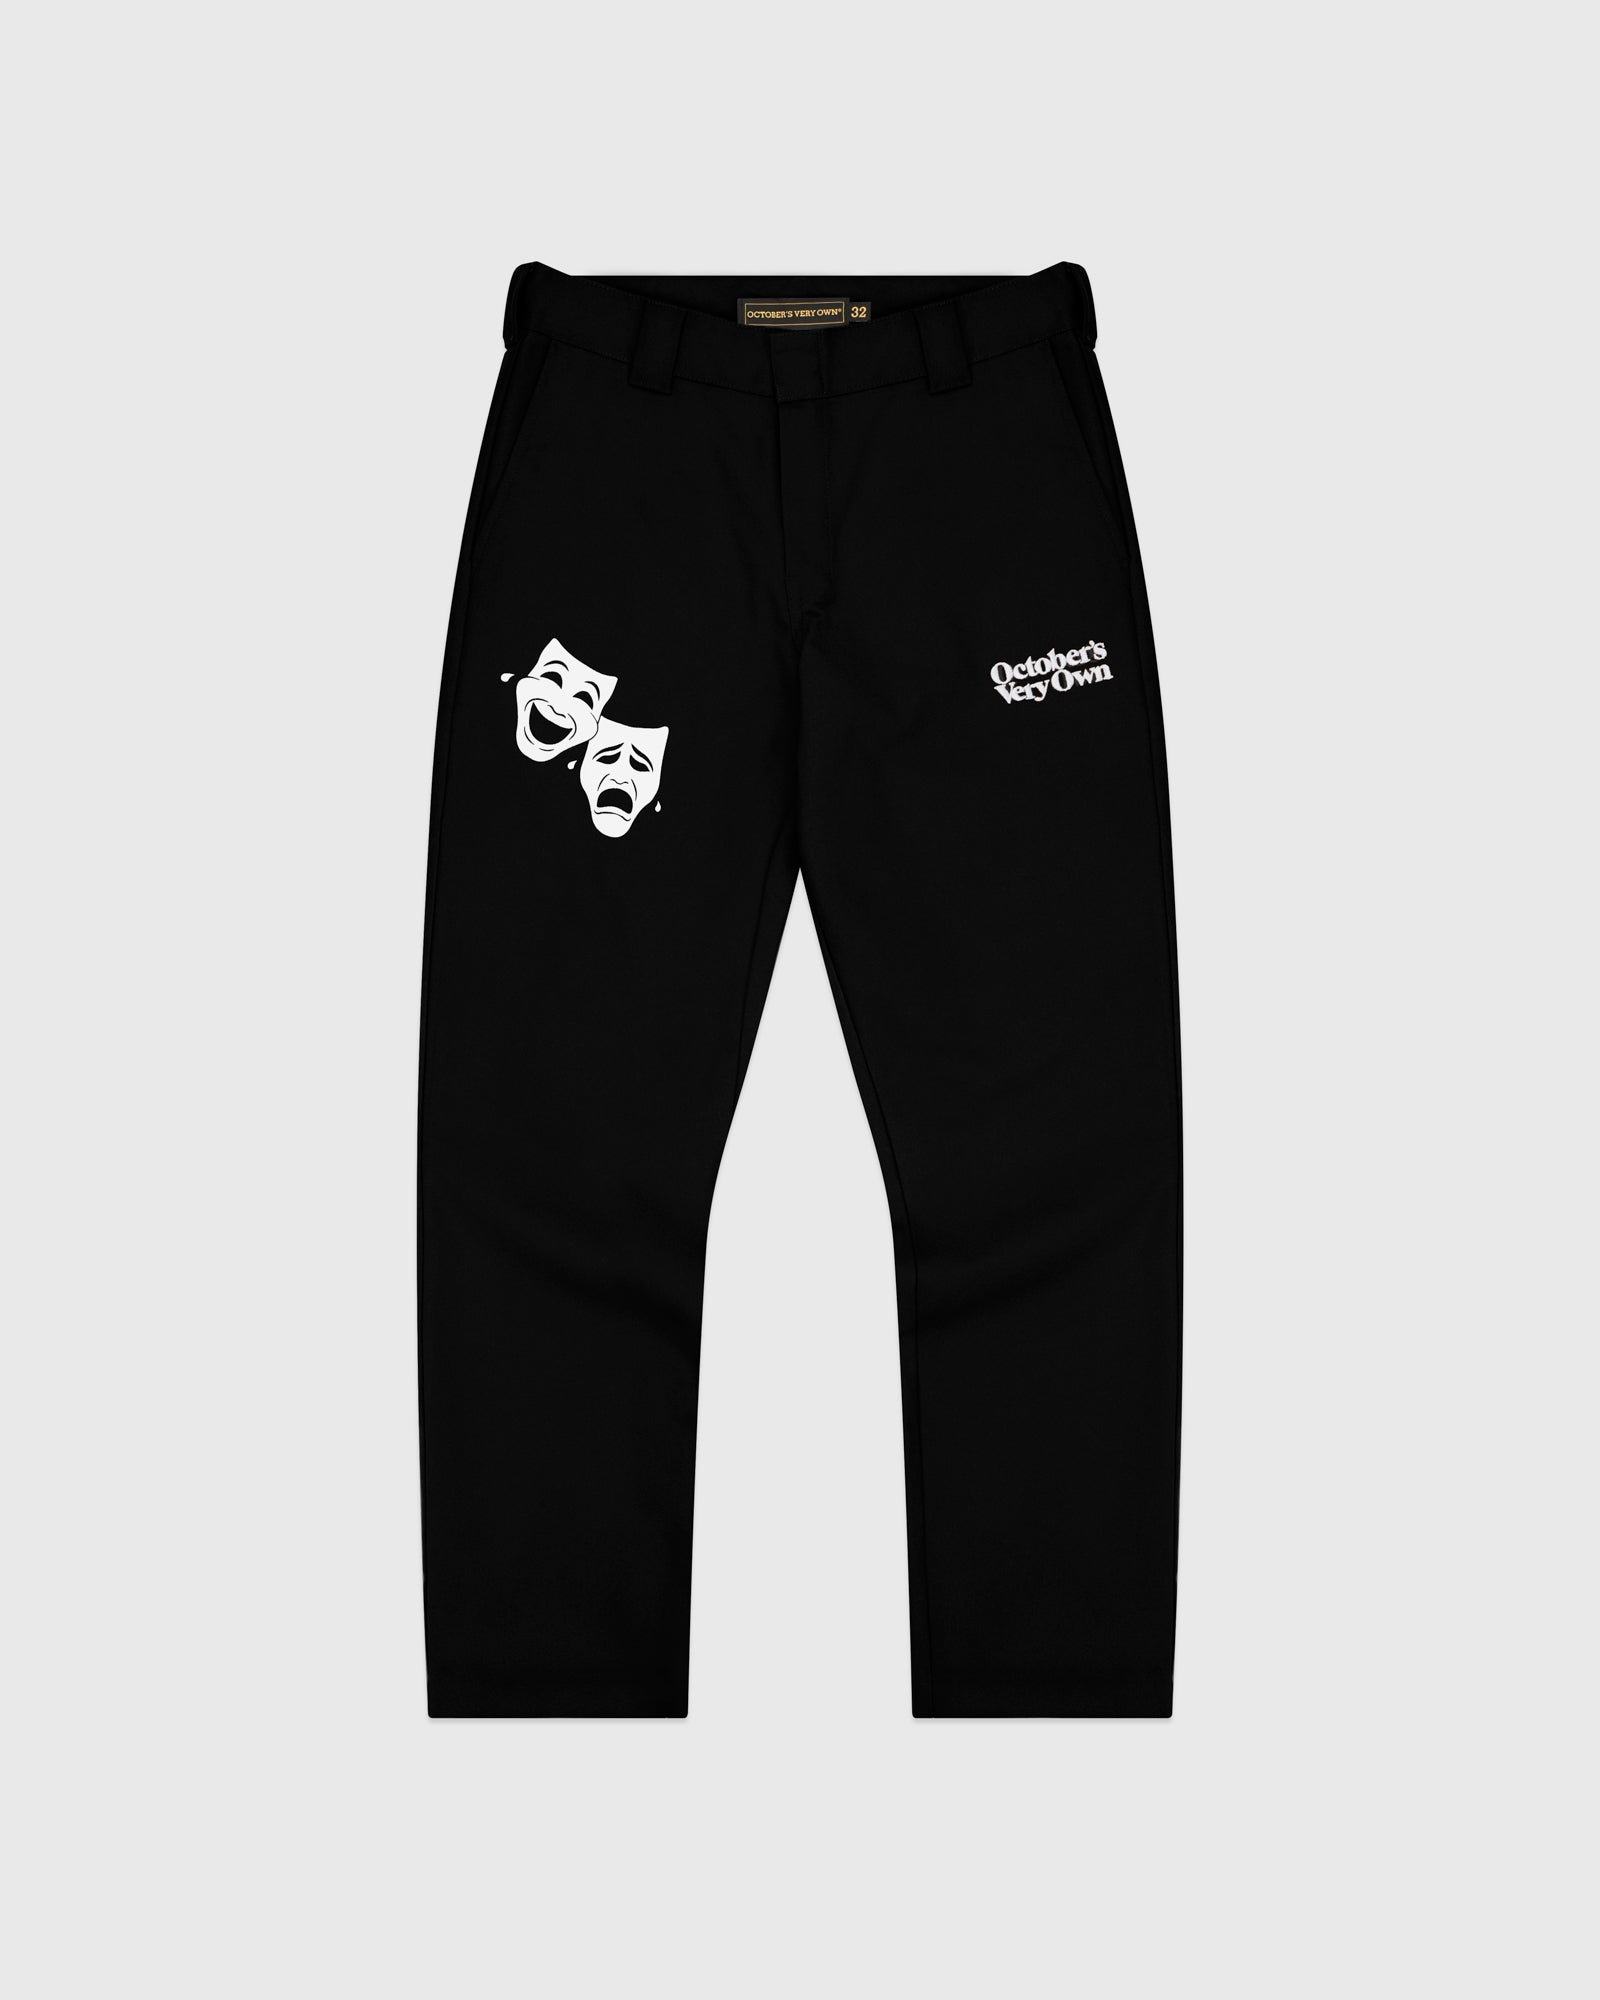 OCTOBER CANVAS PANT - BLACK IMAGE #1